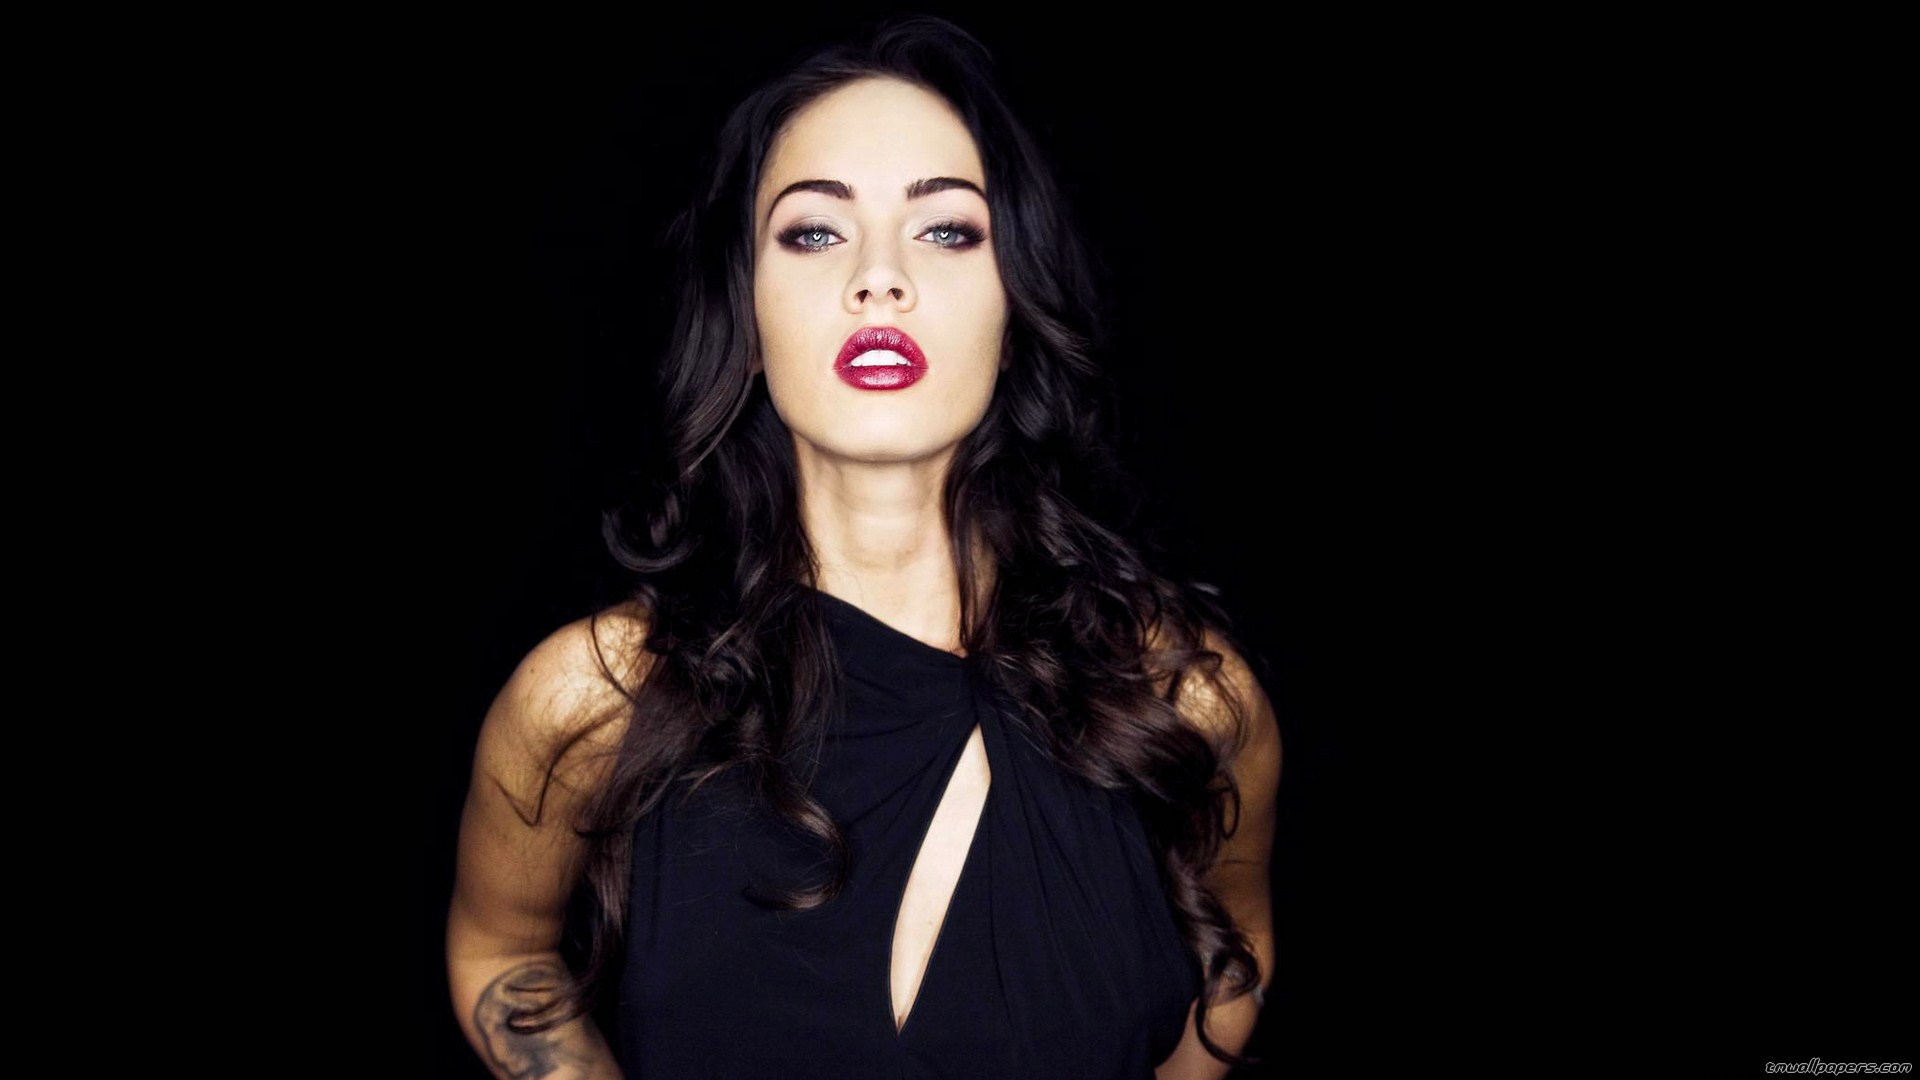 Wallpapers Wide Wallpapers E Hd Wallpapers Megan Fox Wallpapers